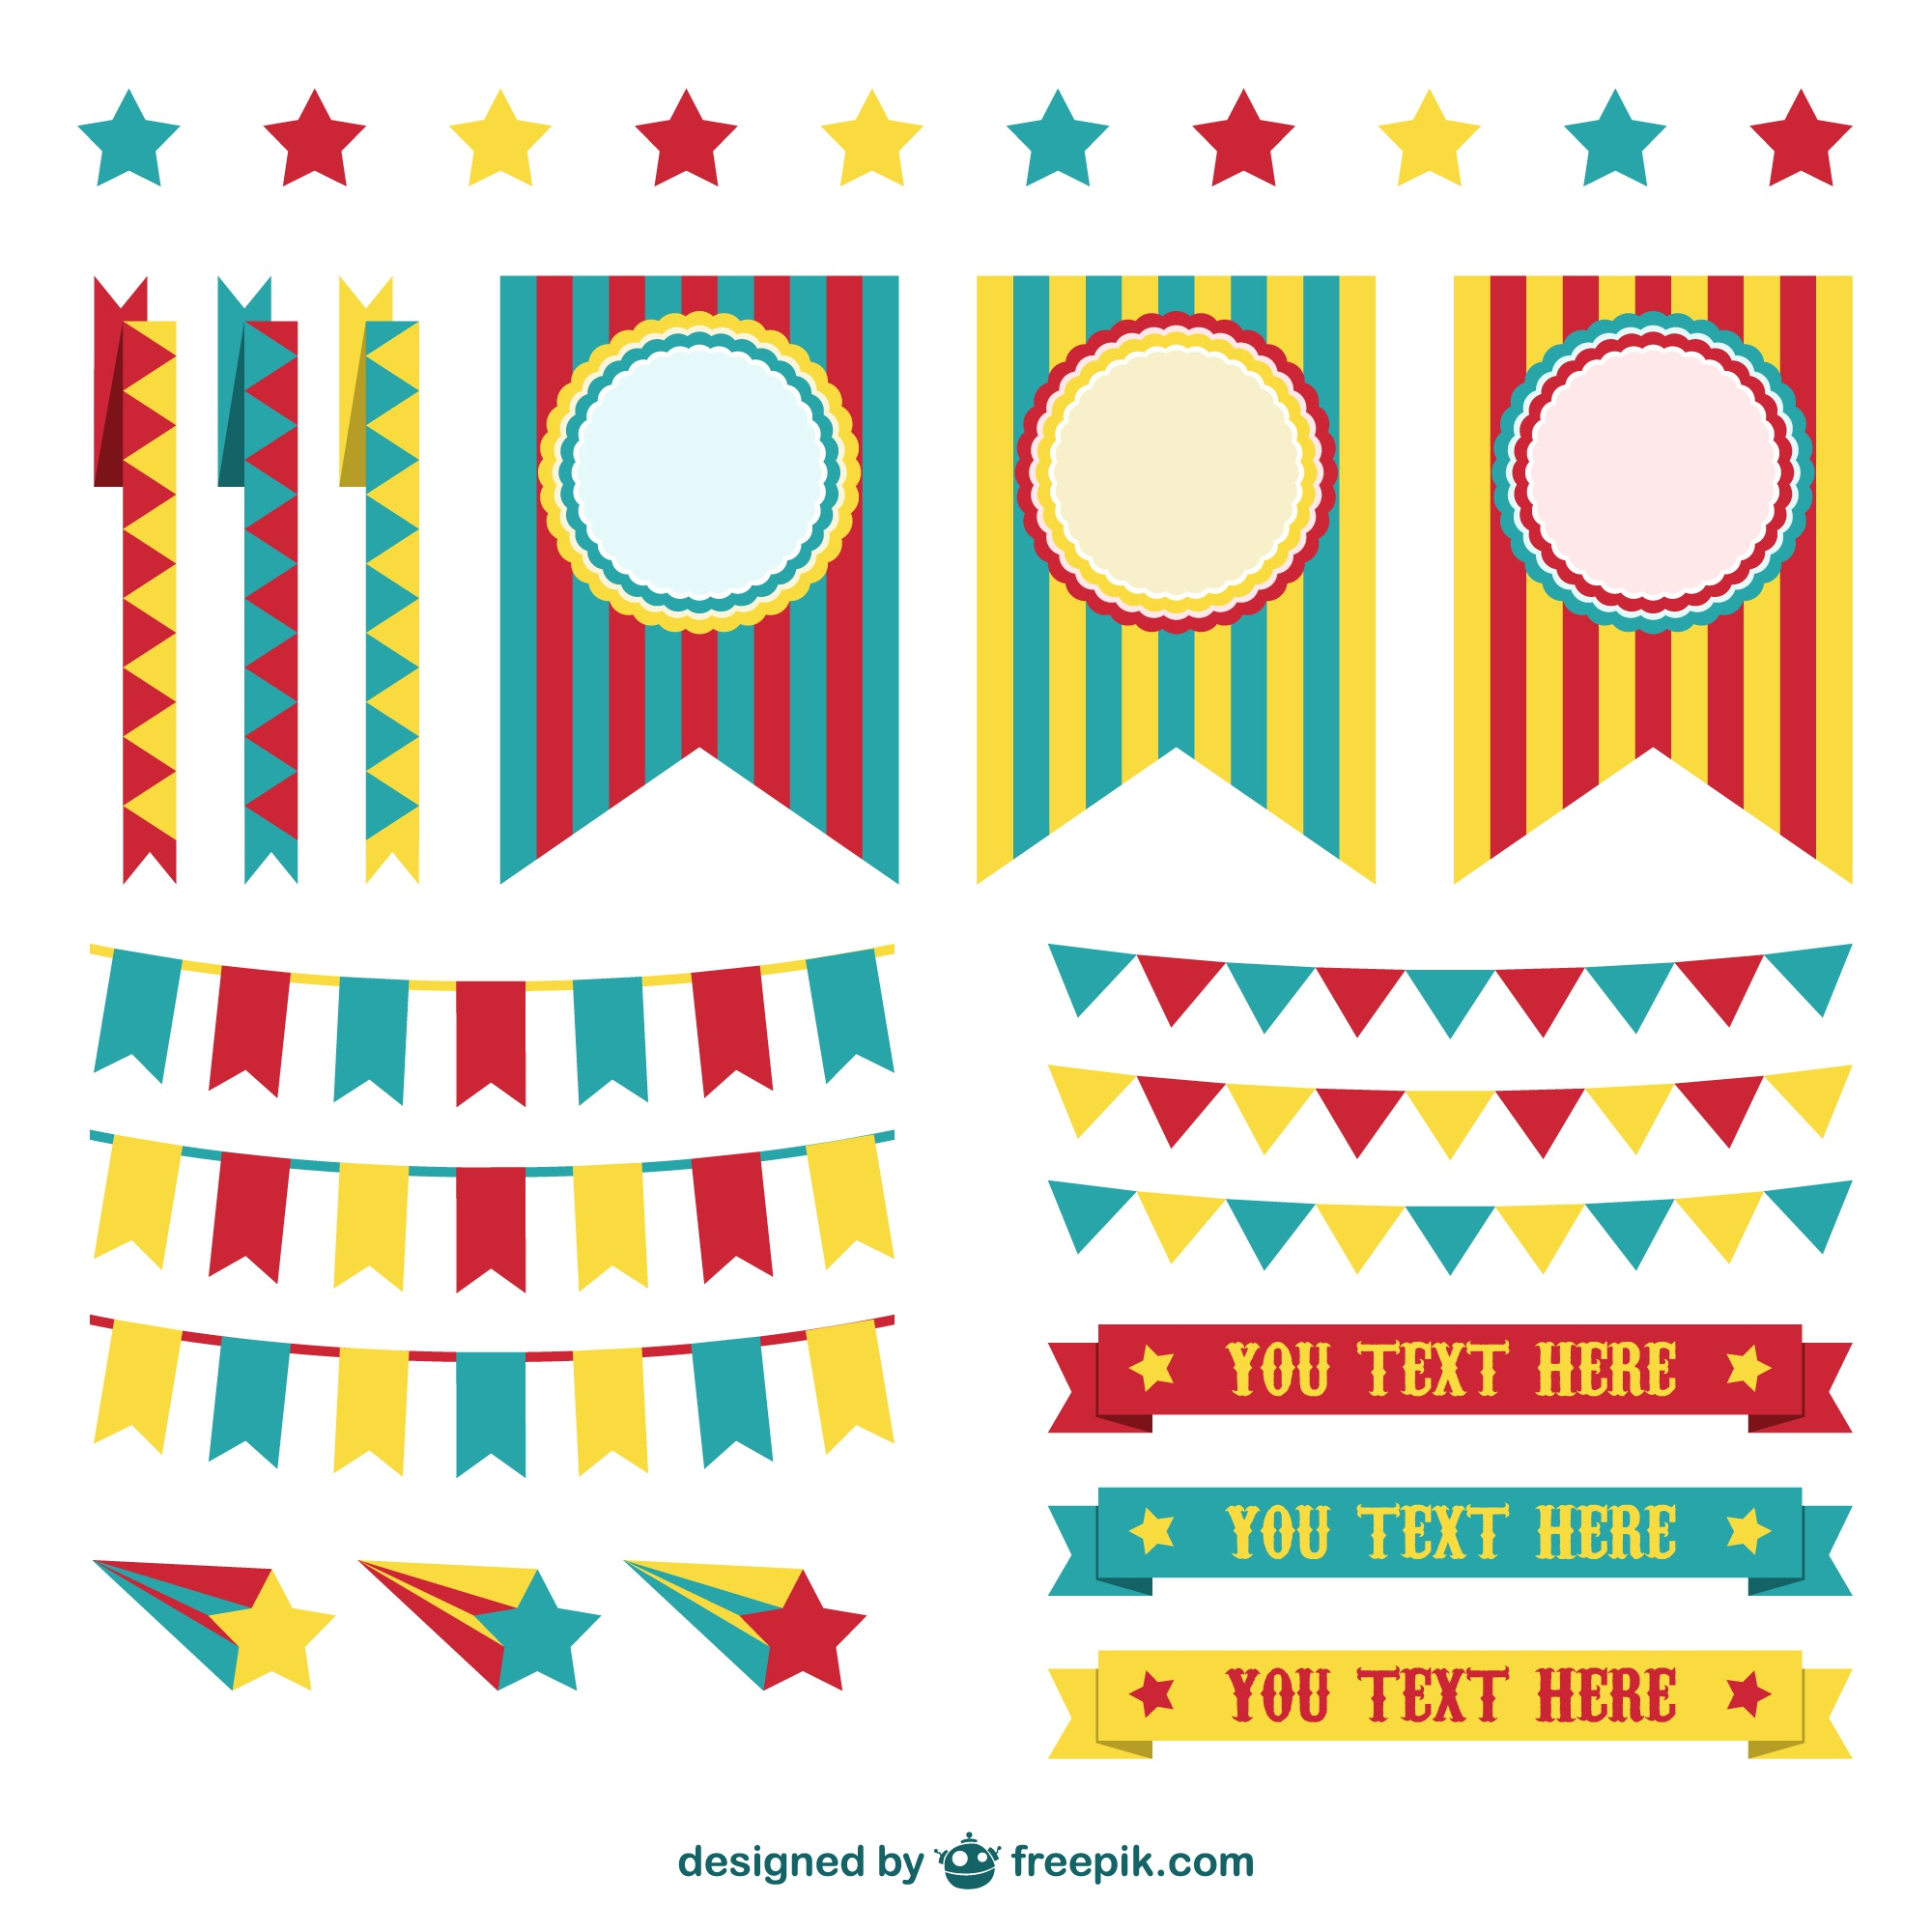 Circus decorations graphic elements